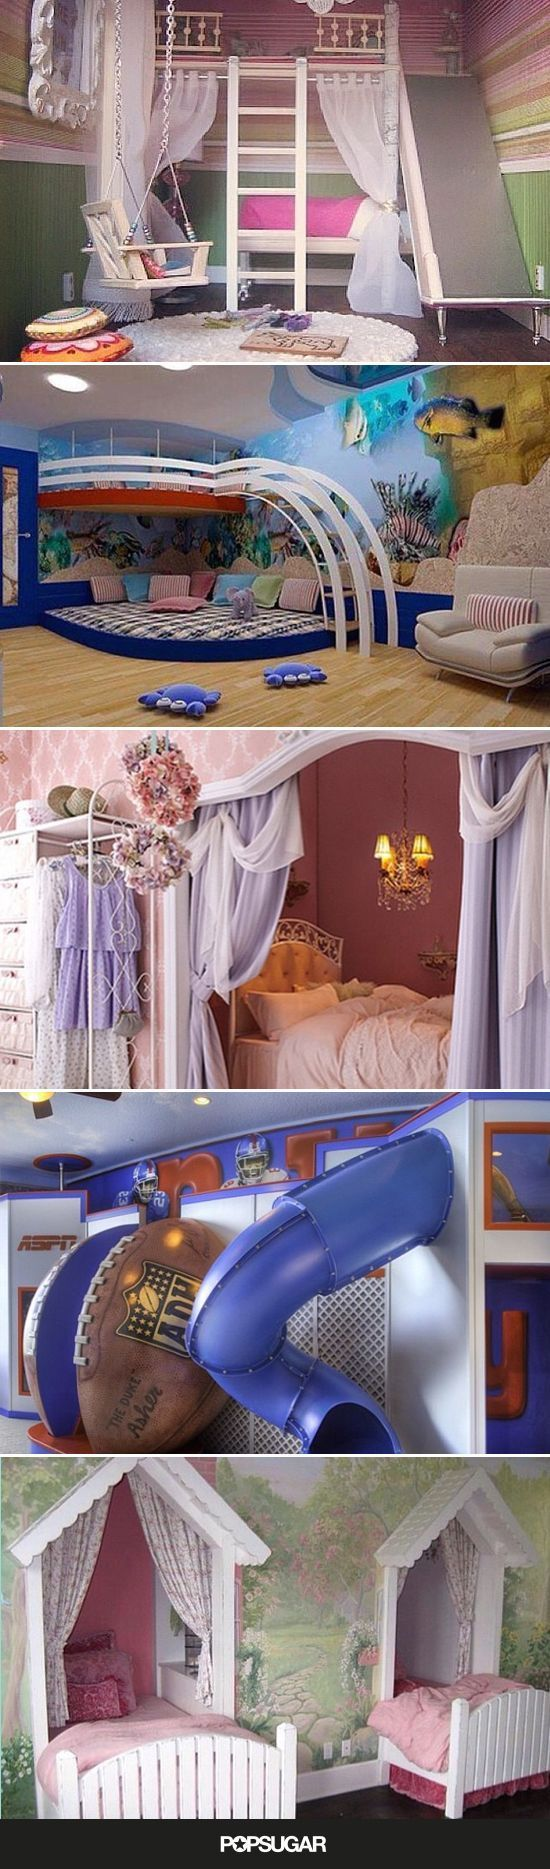 Photo of These 27 Crazy Kids' Rooms Will Make You Want to Redecorate Immediately